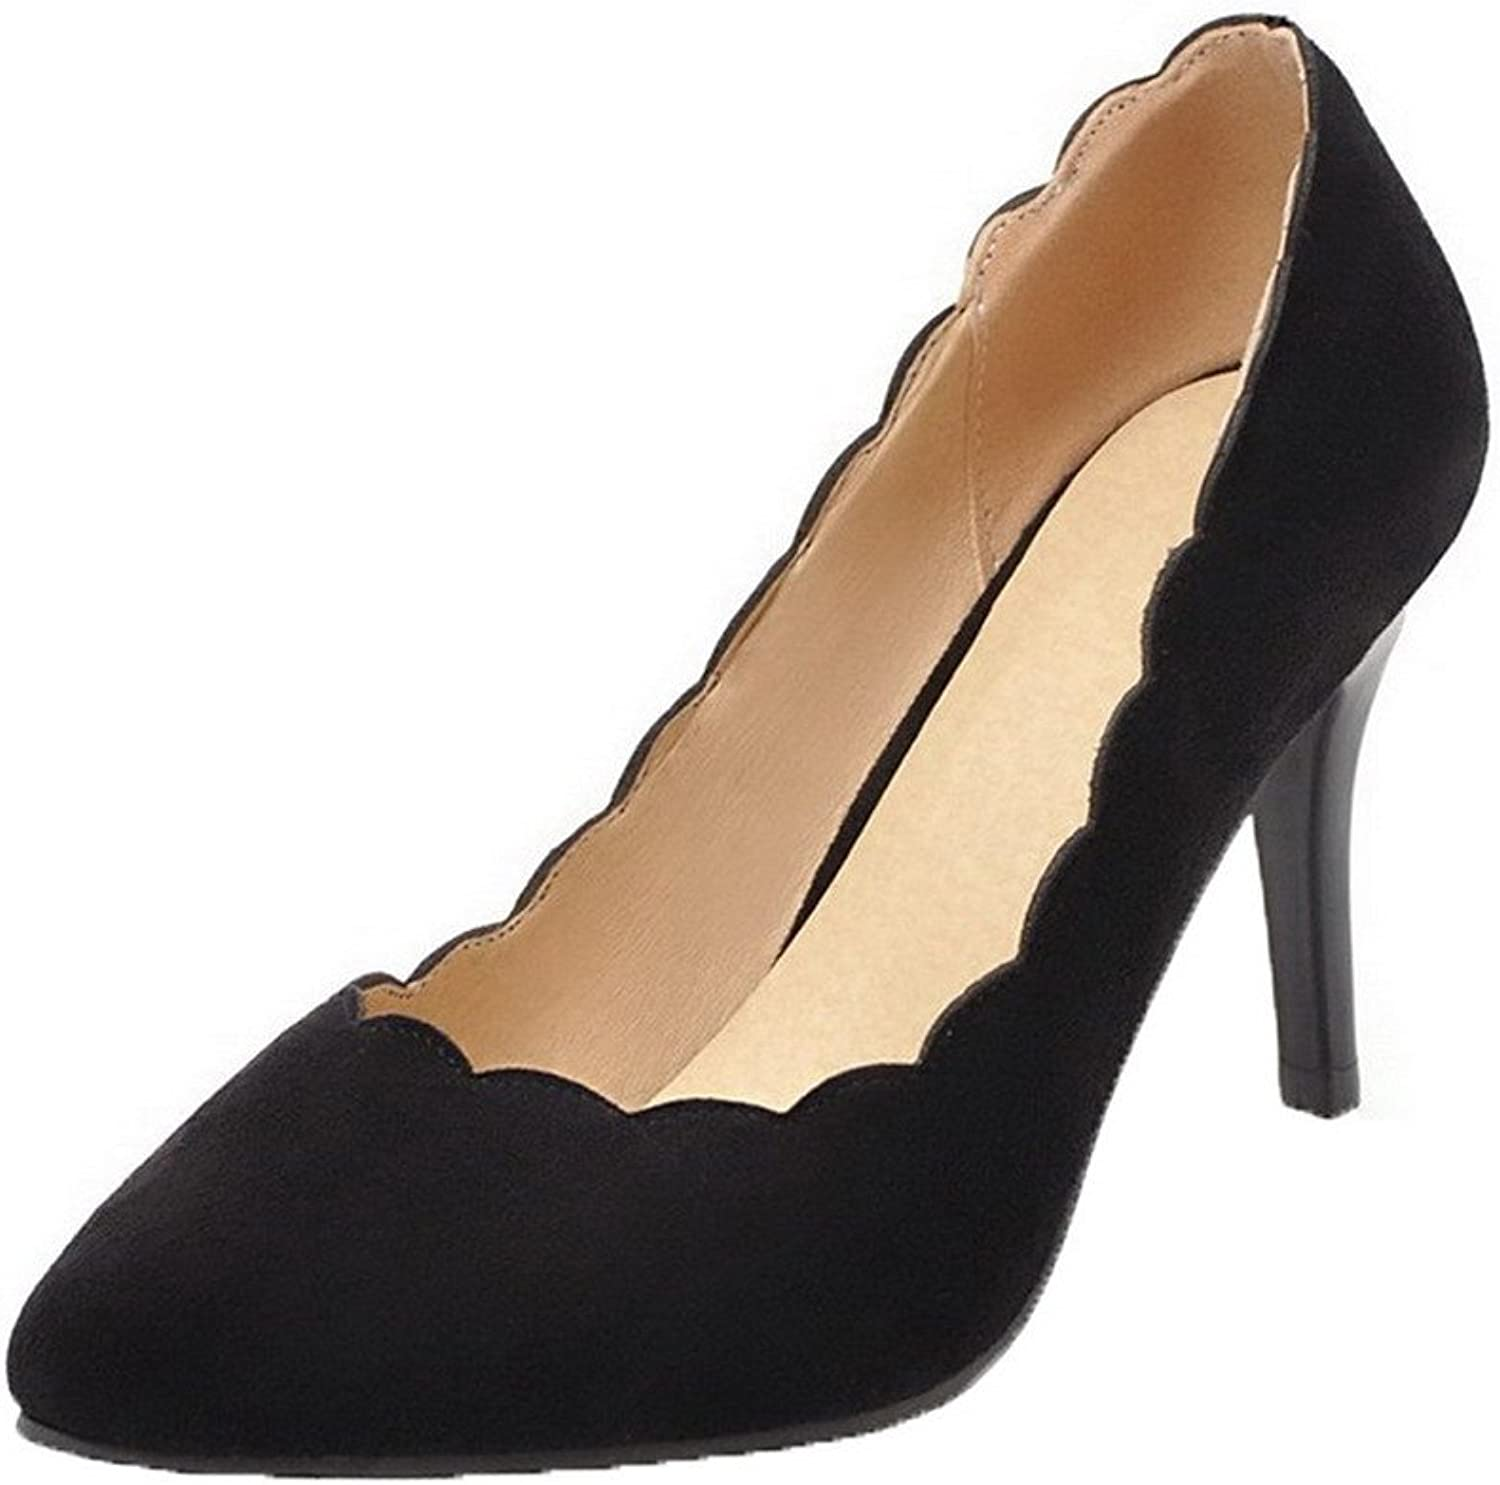 AmoonyFashion Women's Pointed-Toe High-Heels Frosted Solid Pull-On Court shoes